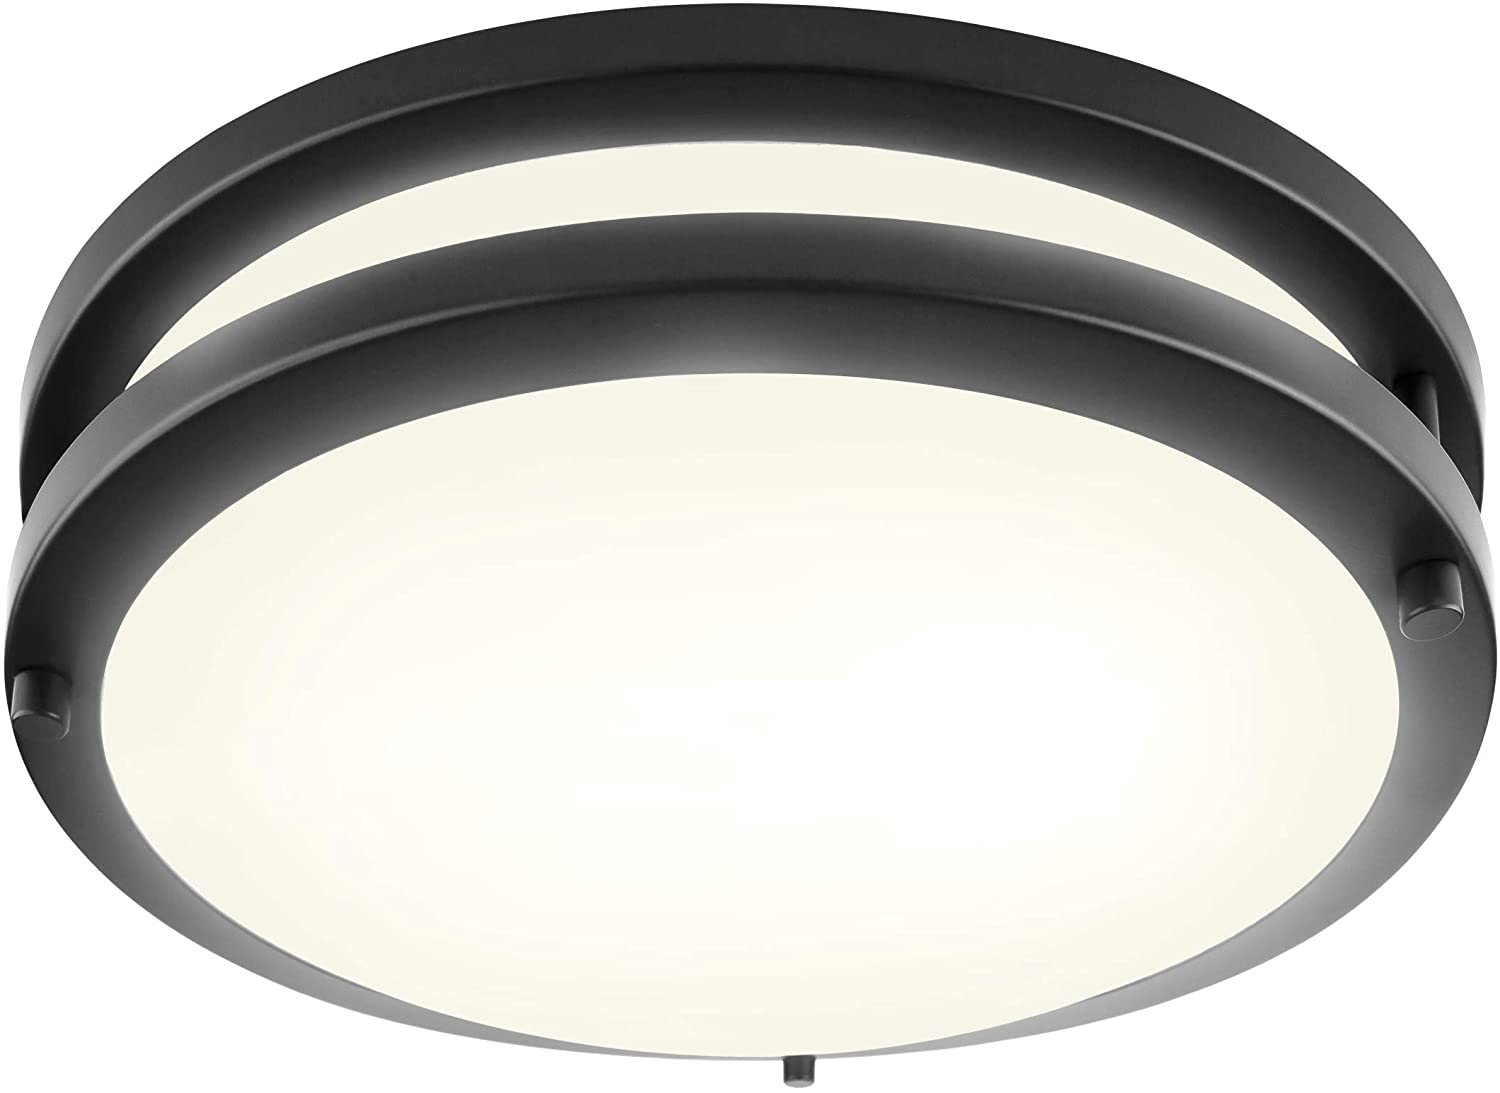 LB72172 LED Flush Mount Ceiling Light, 10-Inch Modern, Dimmable, Round Light Fixture, Oil Rubbed Bronze Finish, 4000K Cool White, 17W, 1350 Lumens, ETL & DLC Listed, Energy Star, Indoors, Hallway, Kid